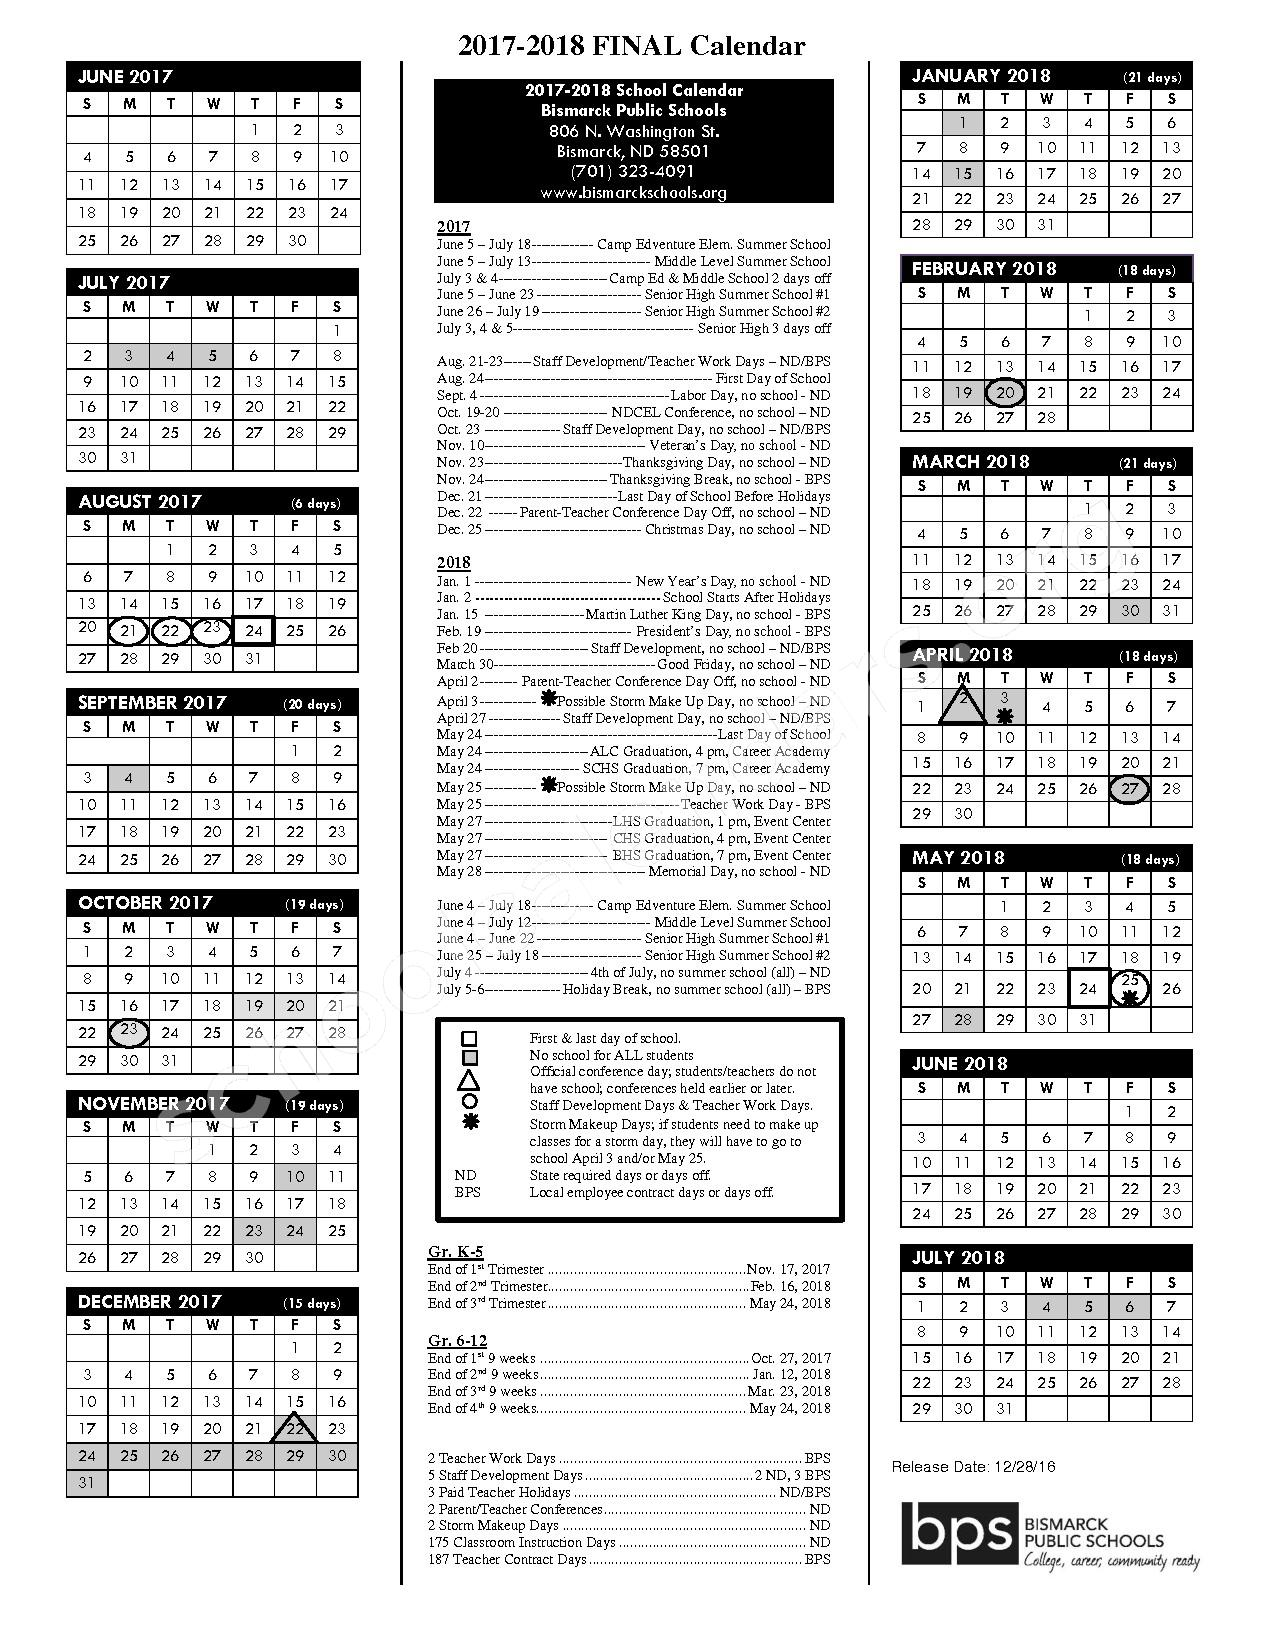 2017 - 2018 school calendar – Northridge Elementary School – page 1